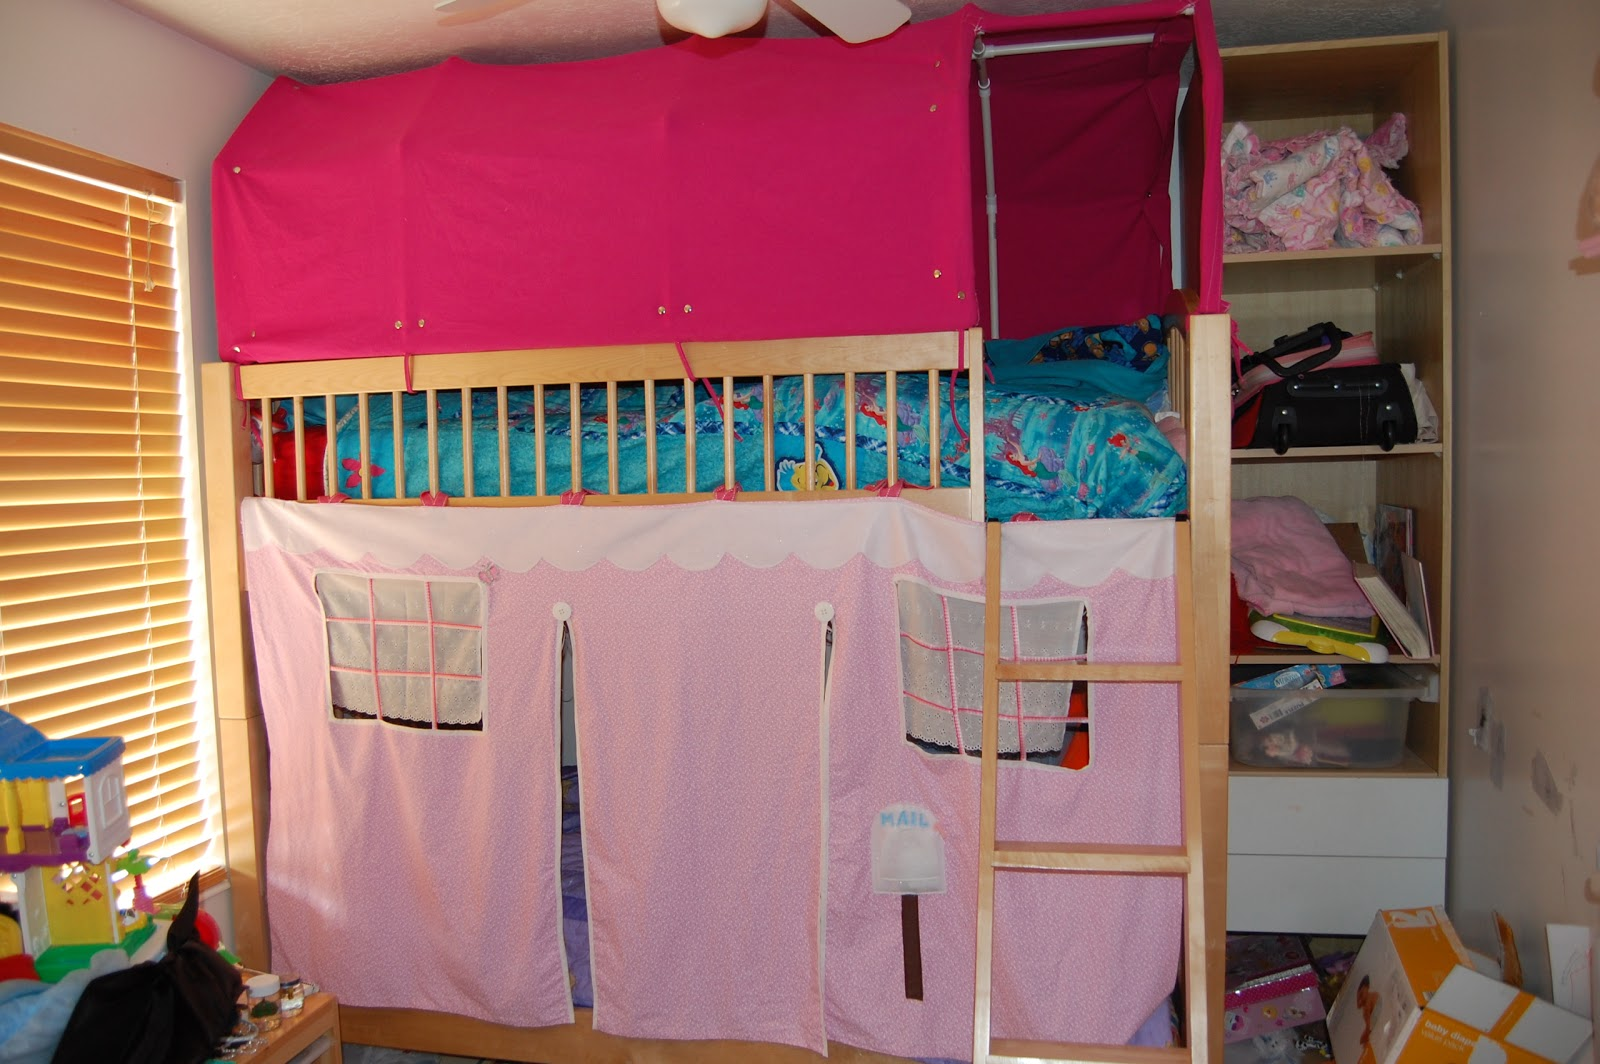 ... Confused: Christmas Crafts--Bunk bed Tents and Who Loves Baby? book